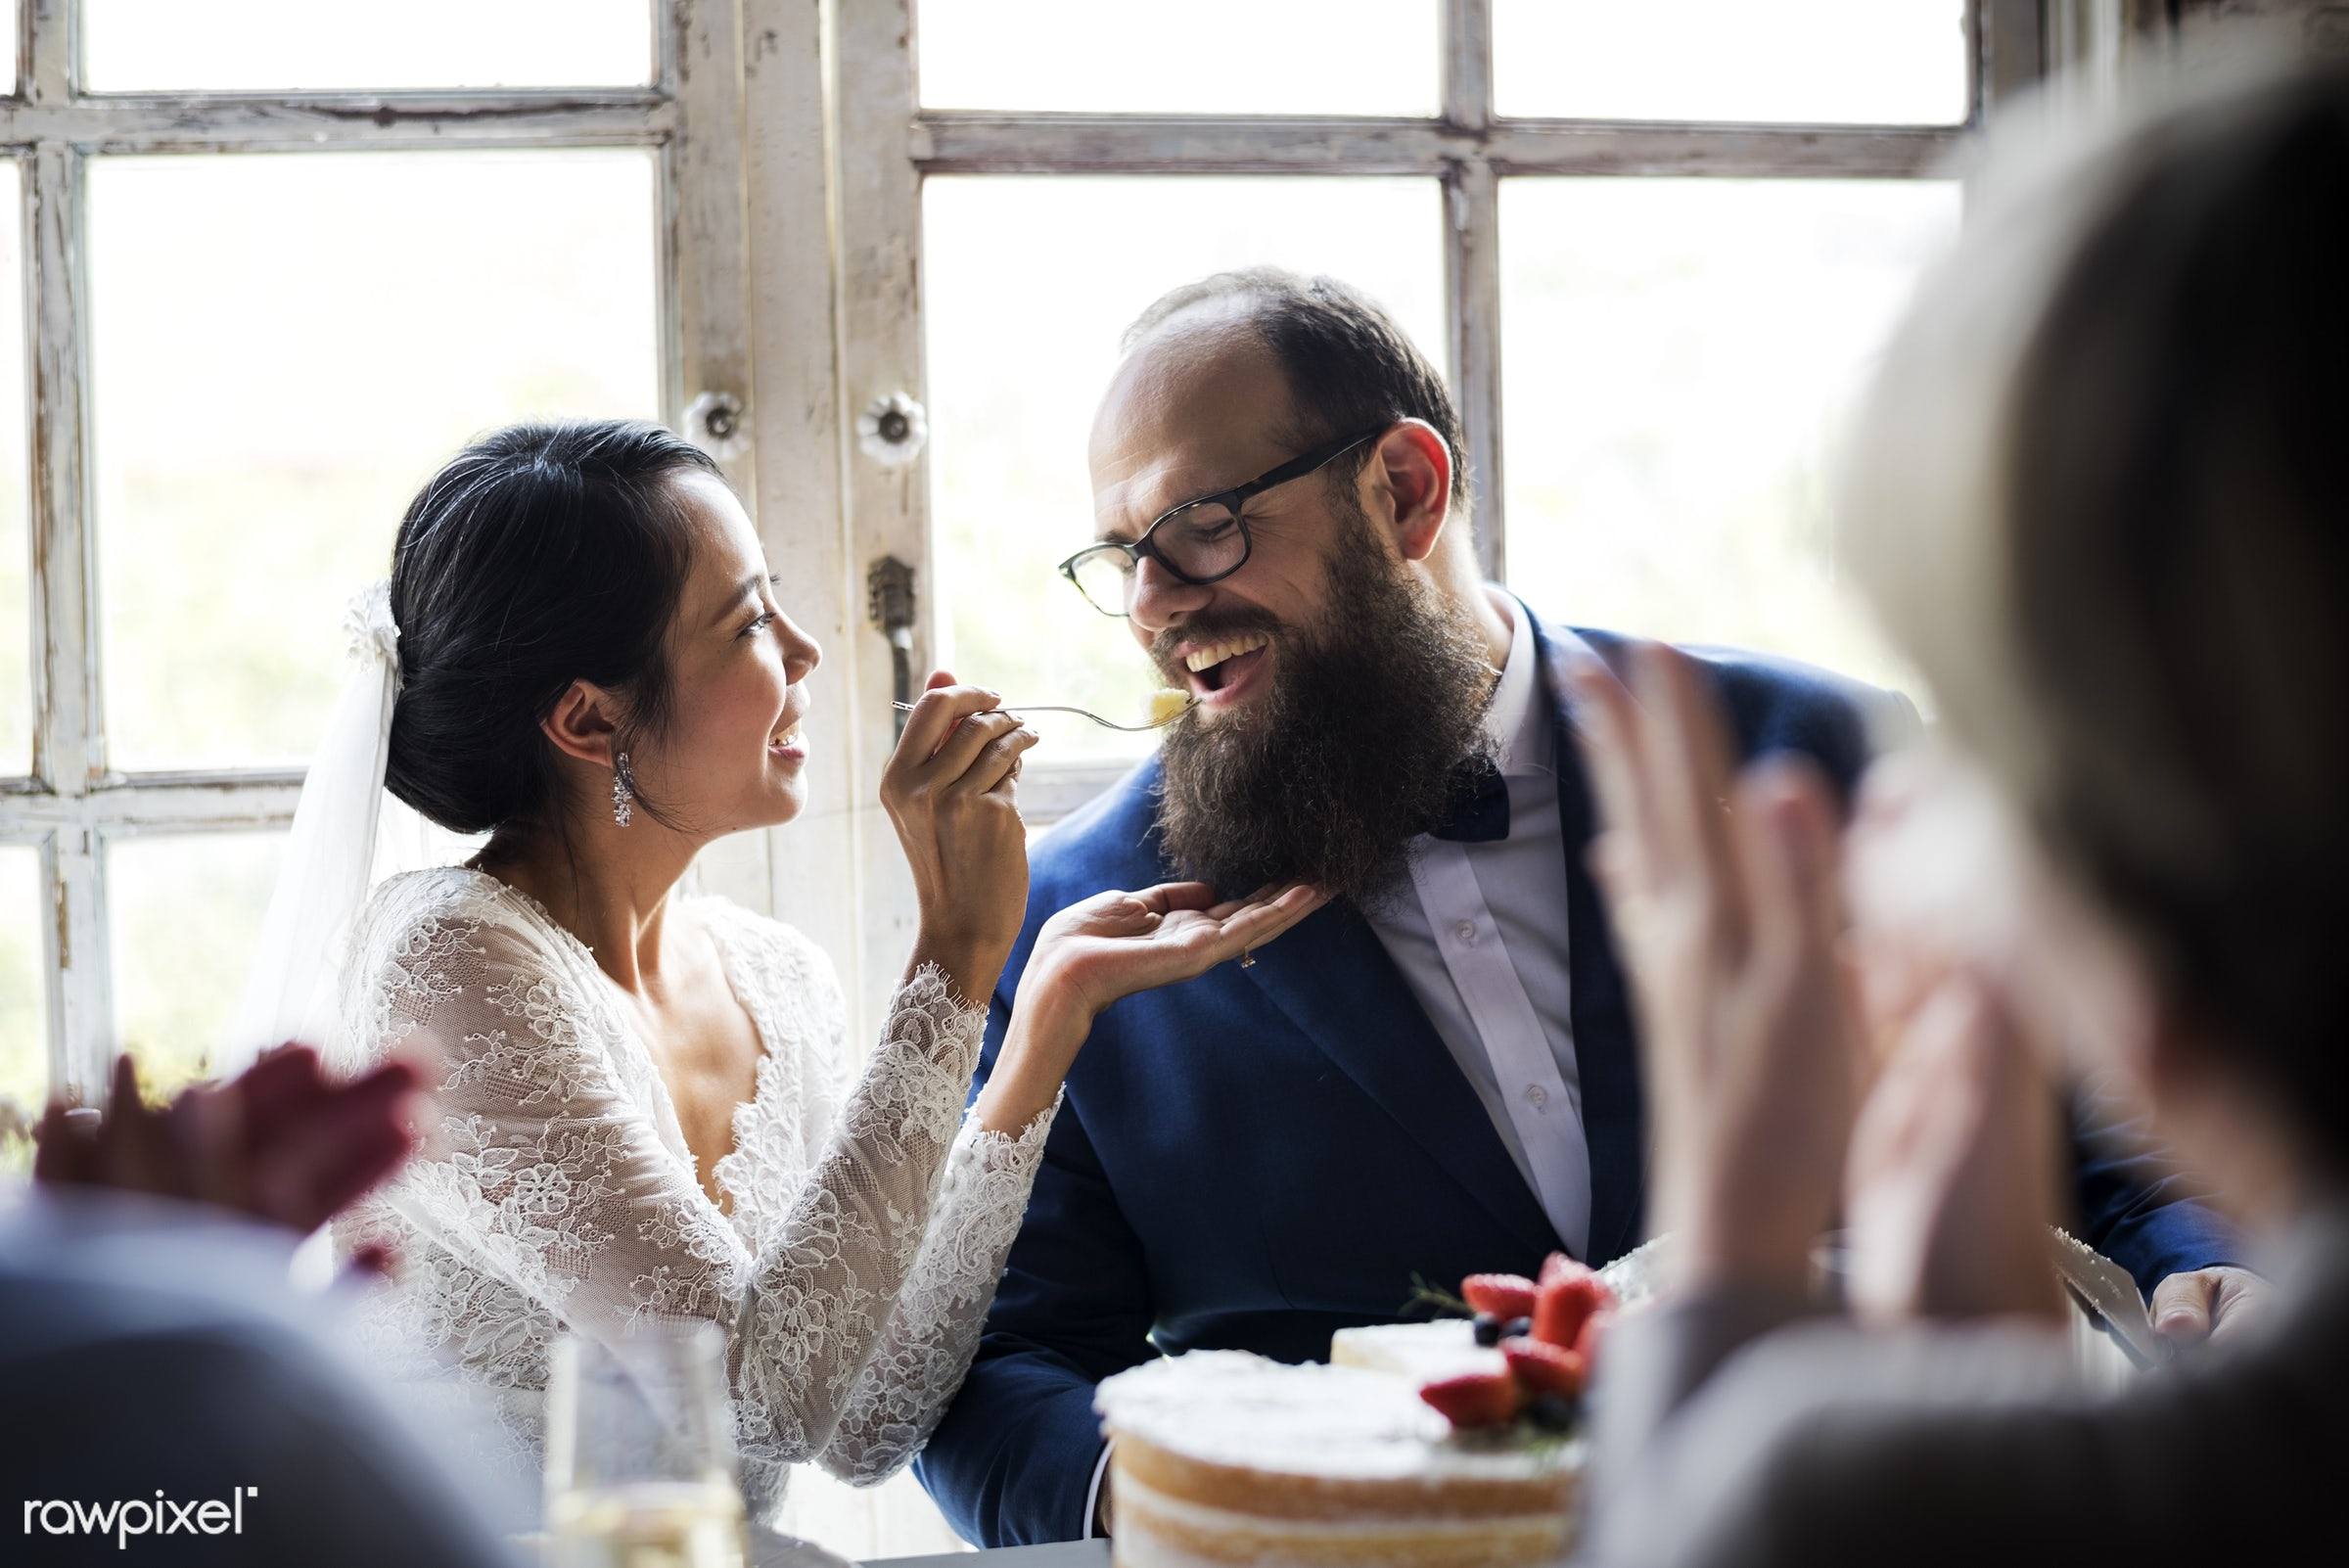 holding, occasion, feeding, asian bride, people, together, love, married, friends, hands, spouse, event, gathering, couple,...